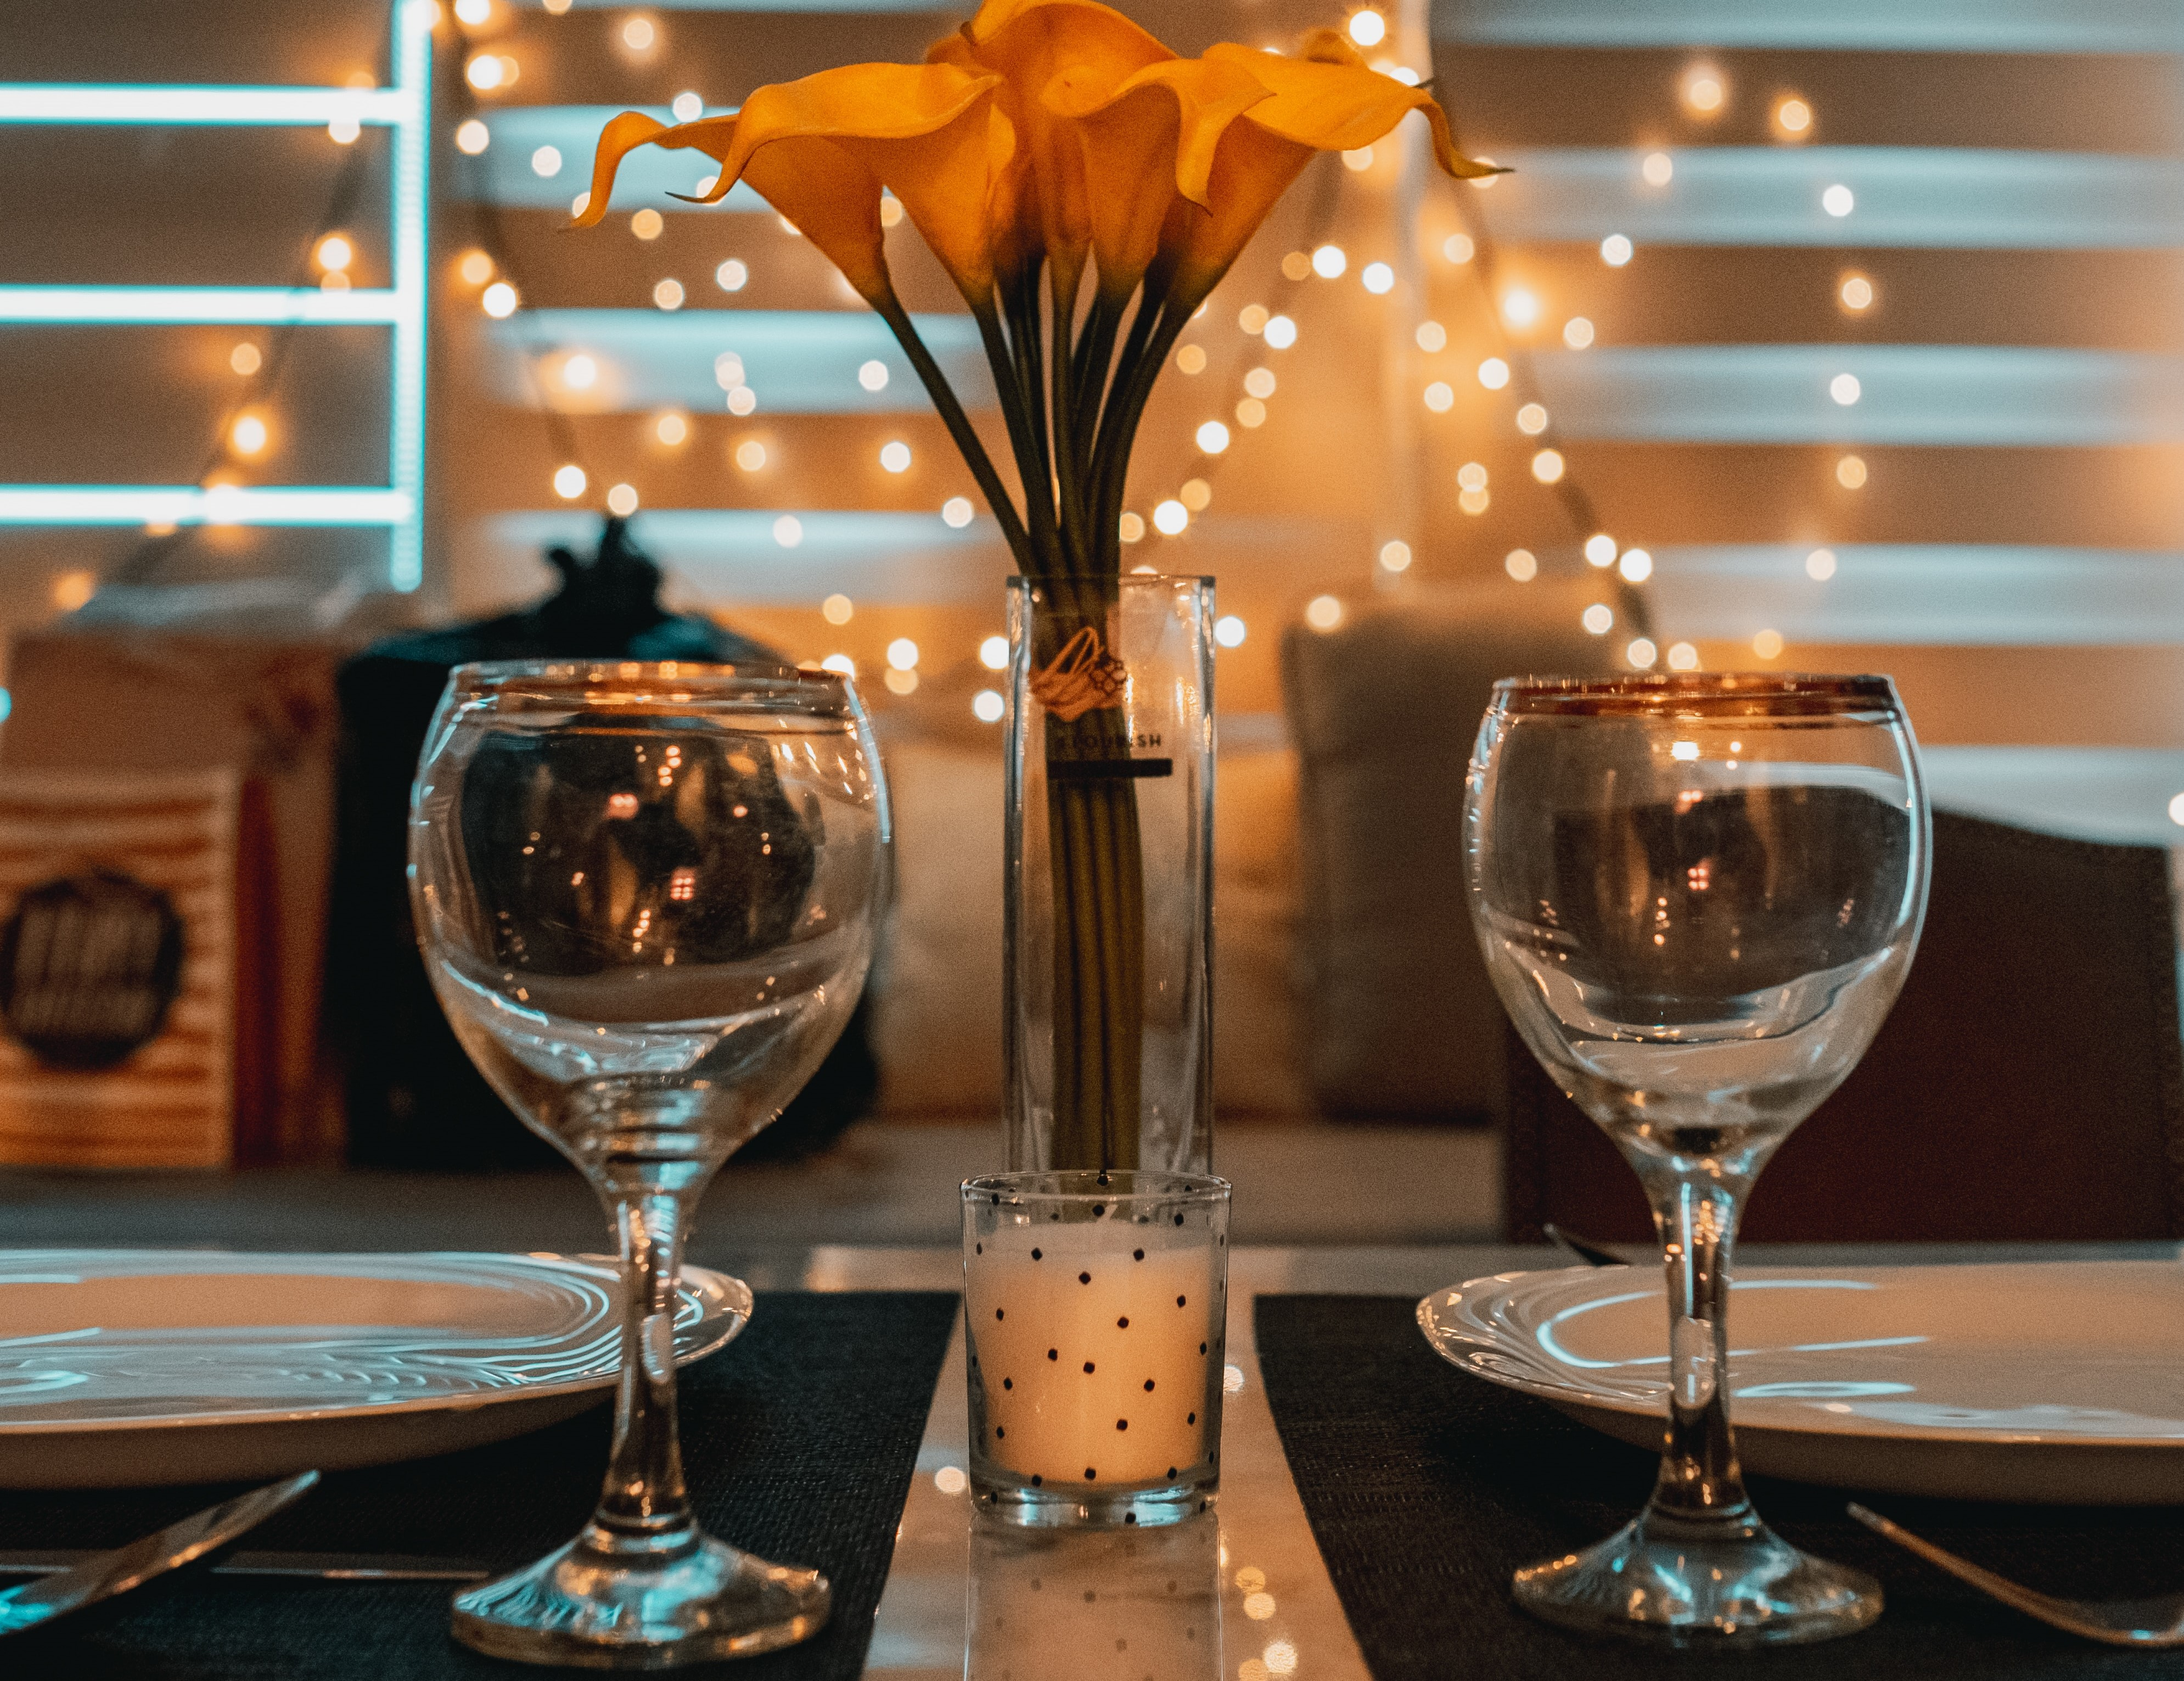 Two clear wine glasses on a table near an unlit tealight, by white plates, with a flower centerpiece, and lights all around.